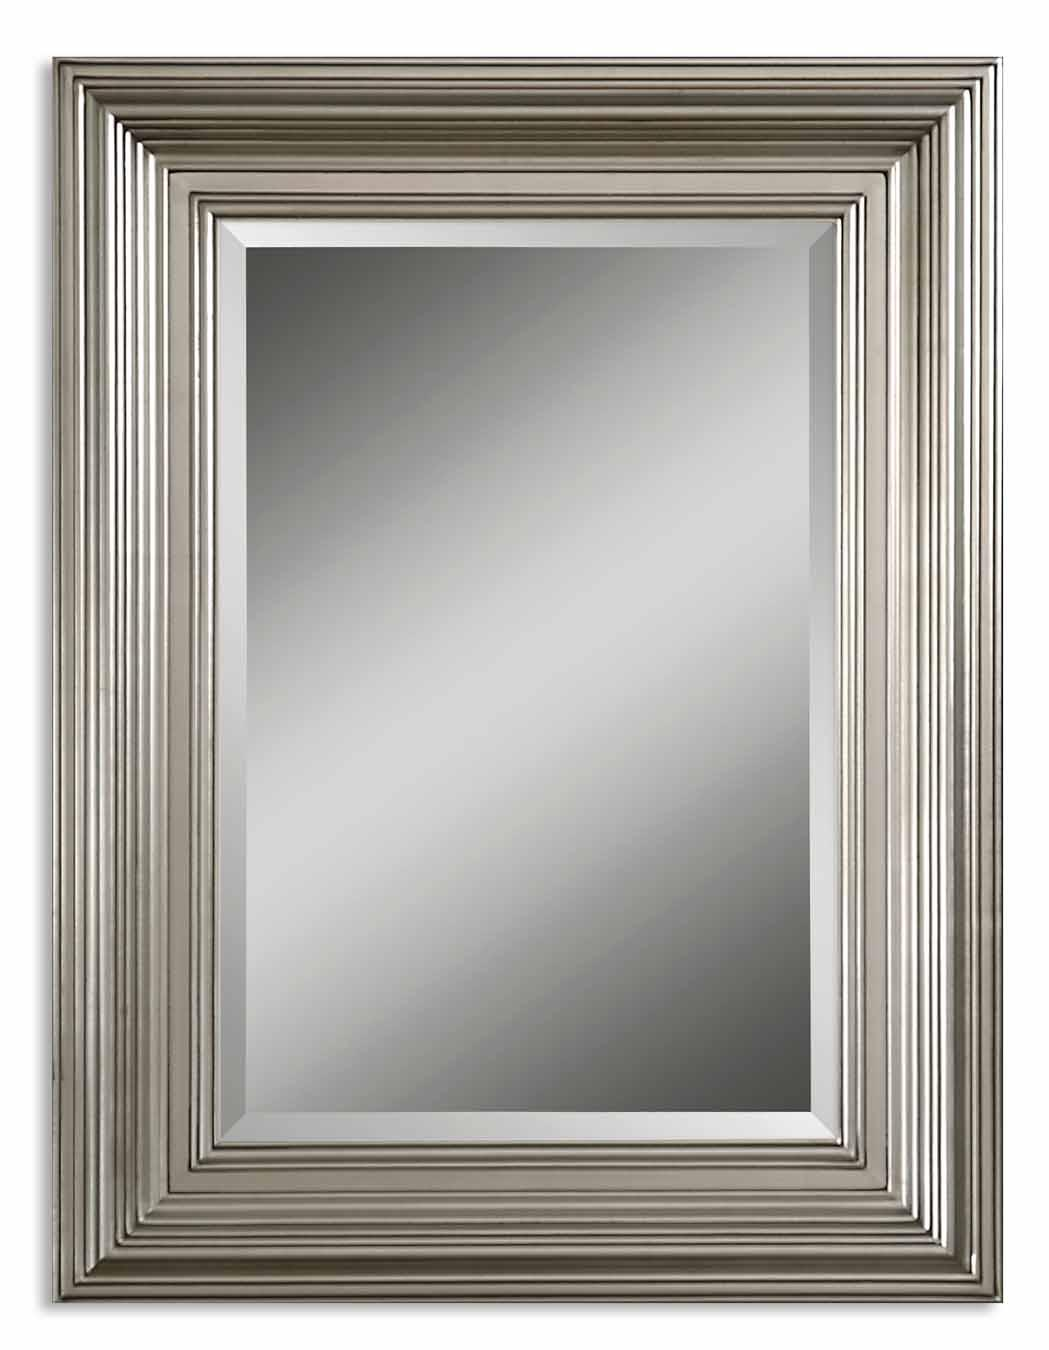 Uttermost Mirrors Mario Silver - Item Number: 14133 B